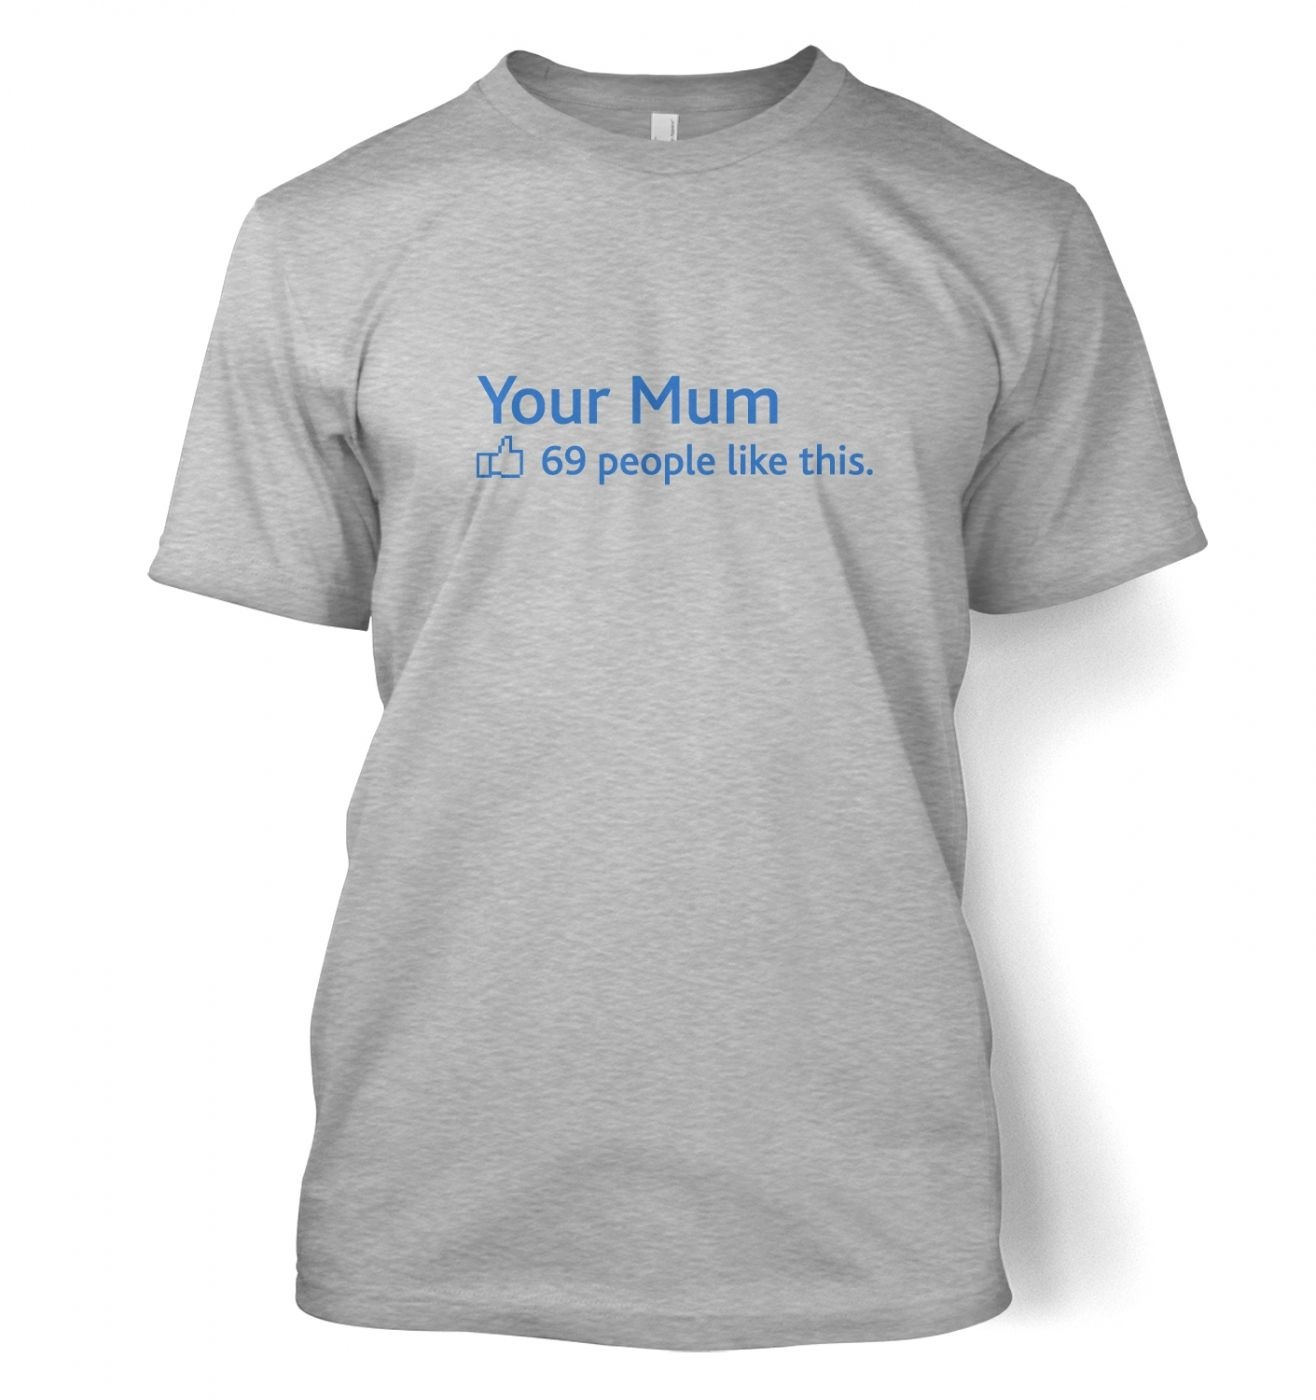 Your Mum Social Status men's t-shirt